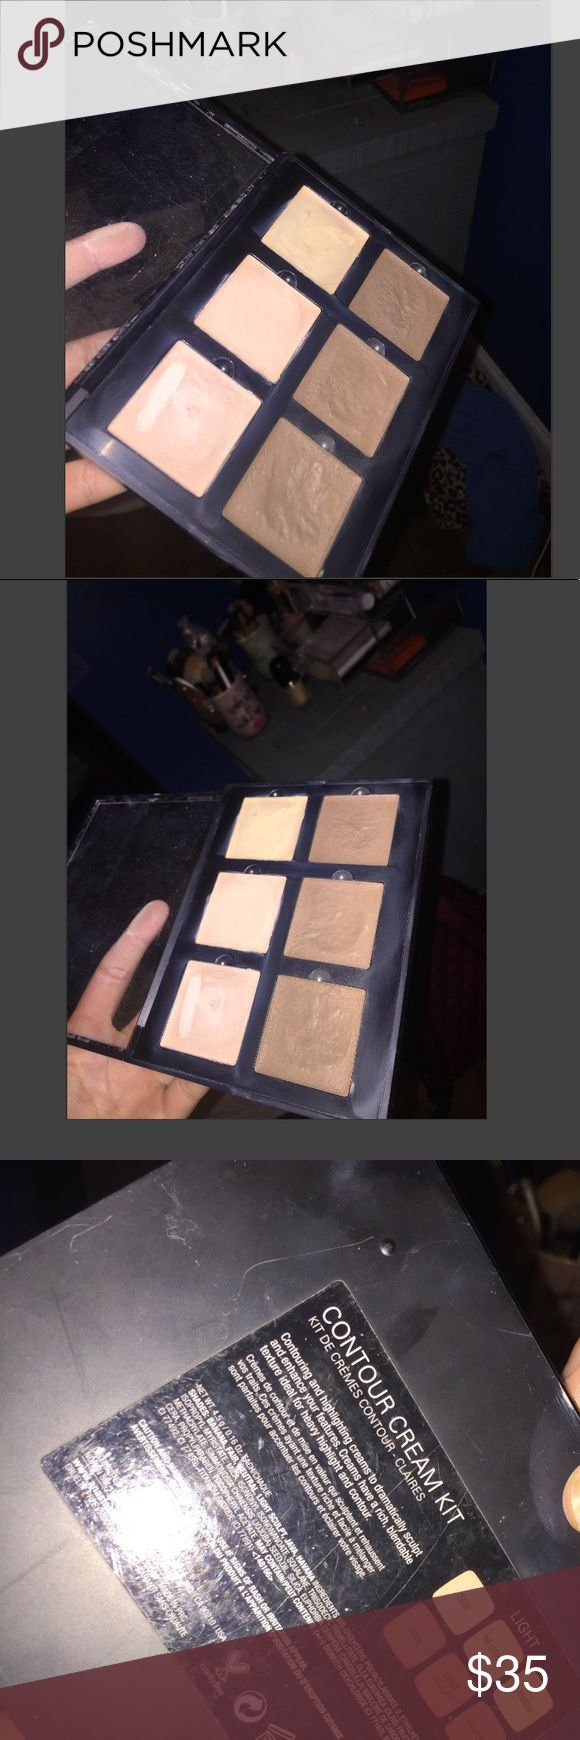 Abh cream contour kit Authentic. Used but still in great conditon. No where near hitting pan on any of the colors Anastasia Beverly Hills Makeup